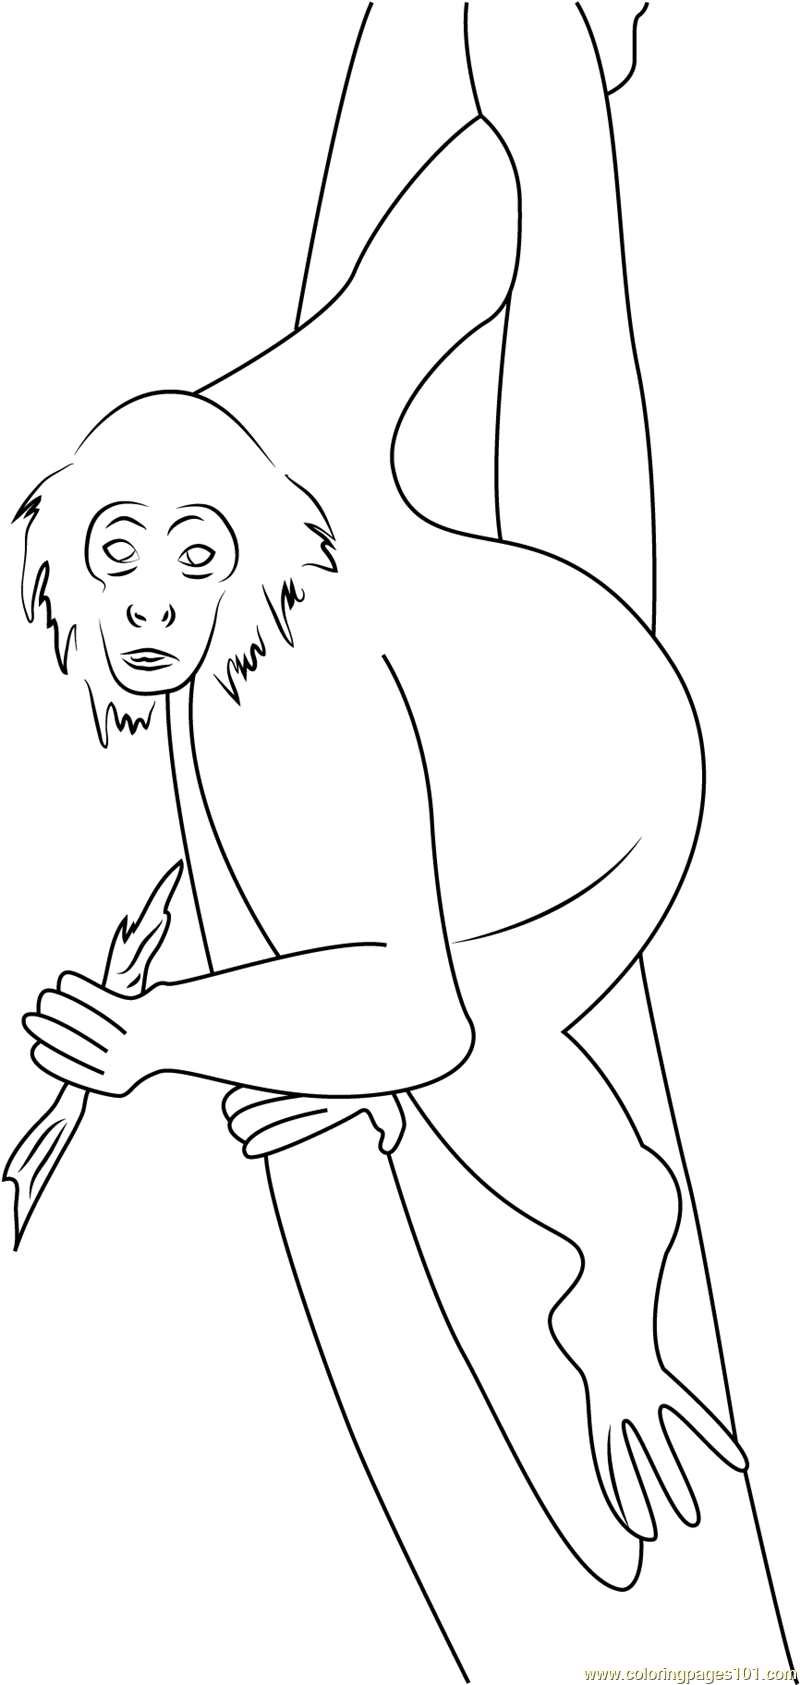 Panama Spider Monkey Costa Rica Coloring Page